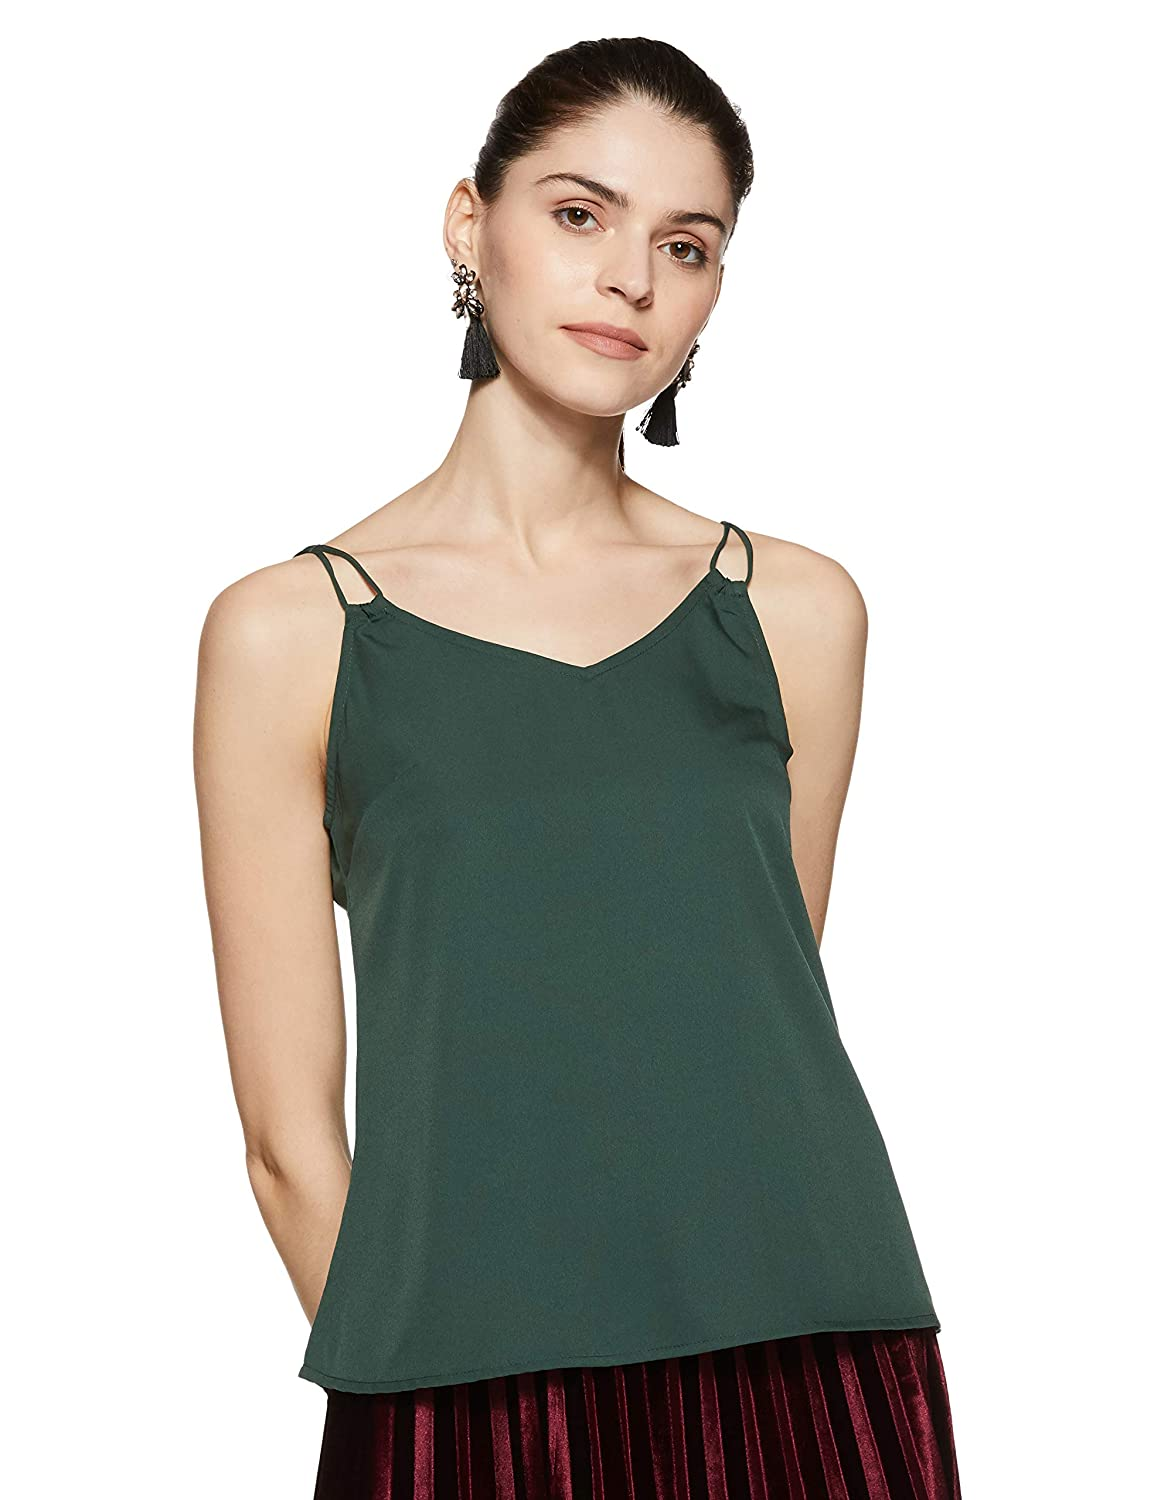 Stalk Buy Love Women's Green Merriam Top at Rs. 399 only